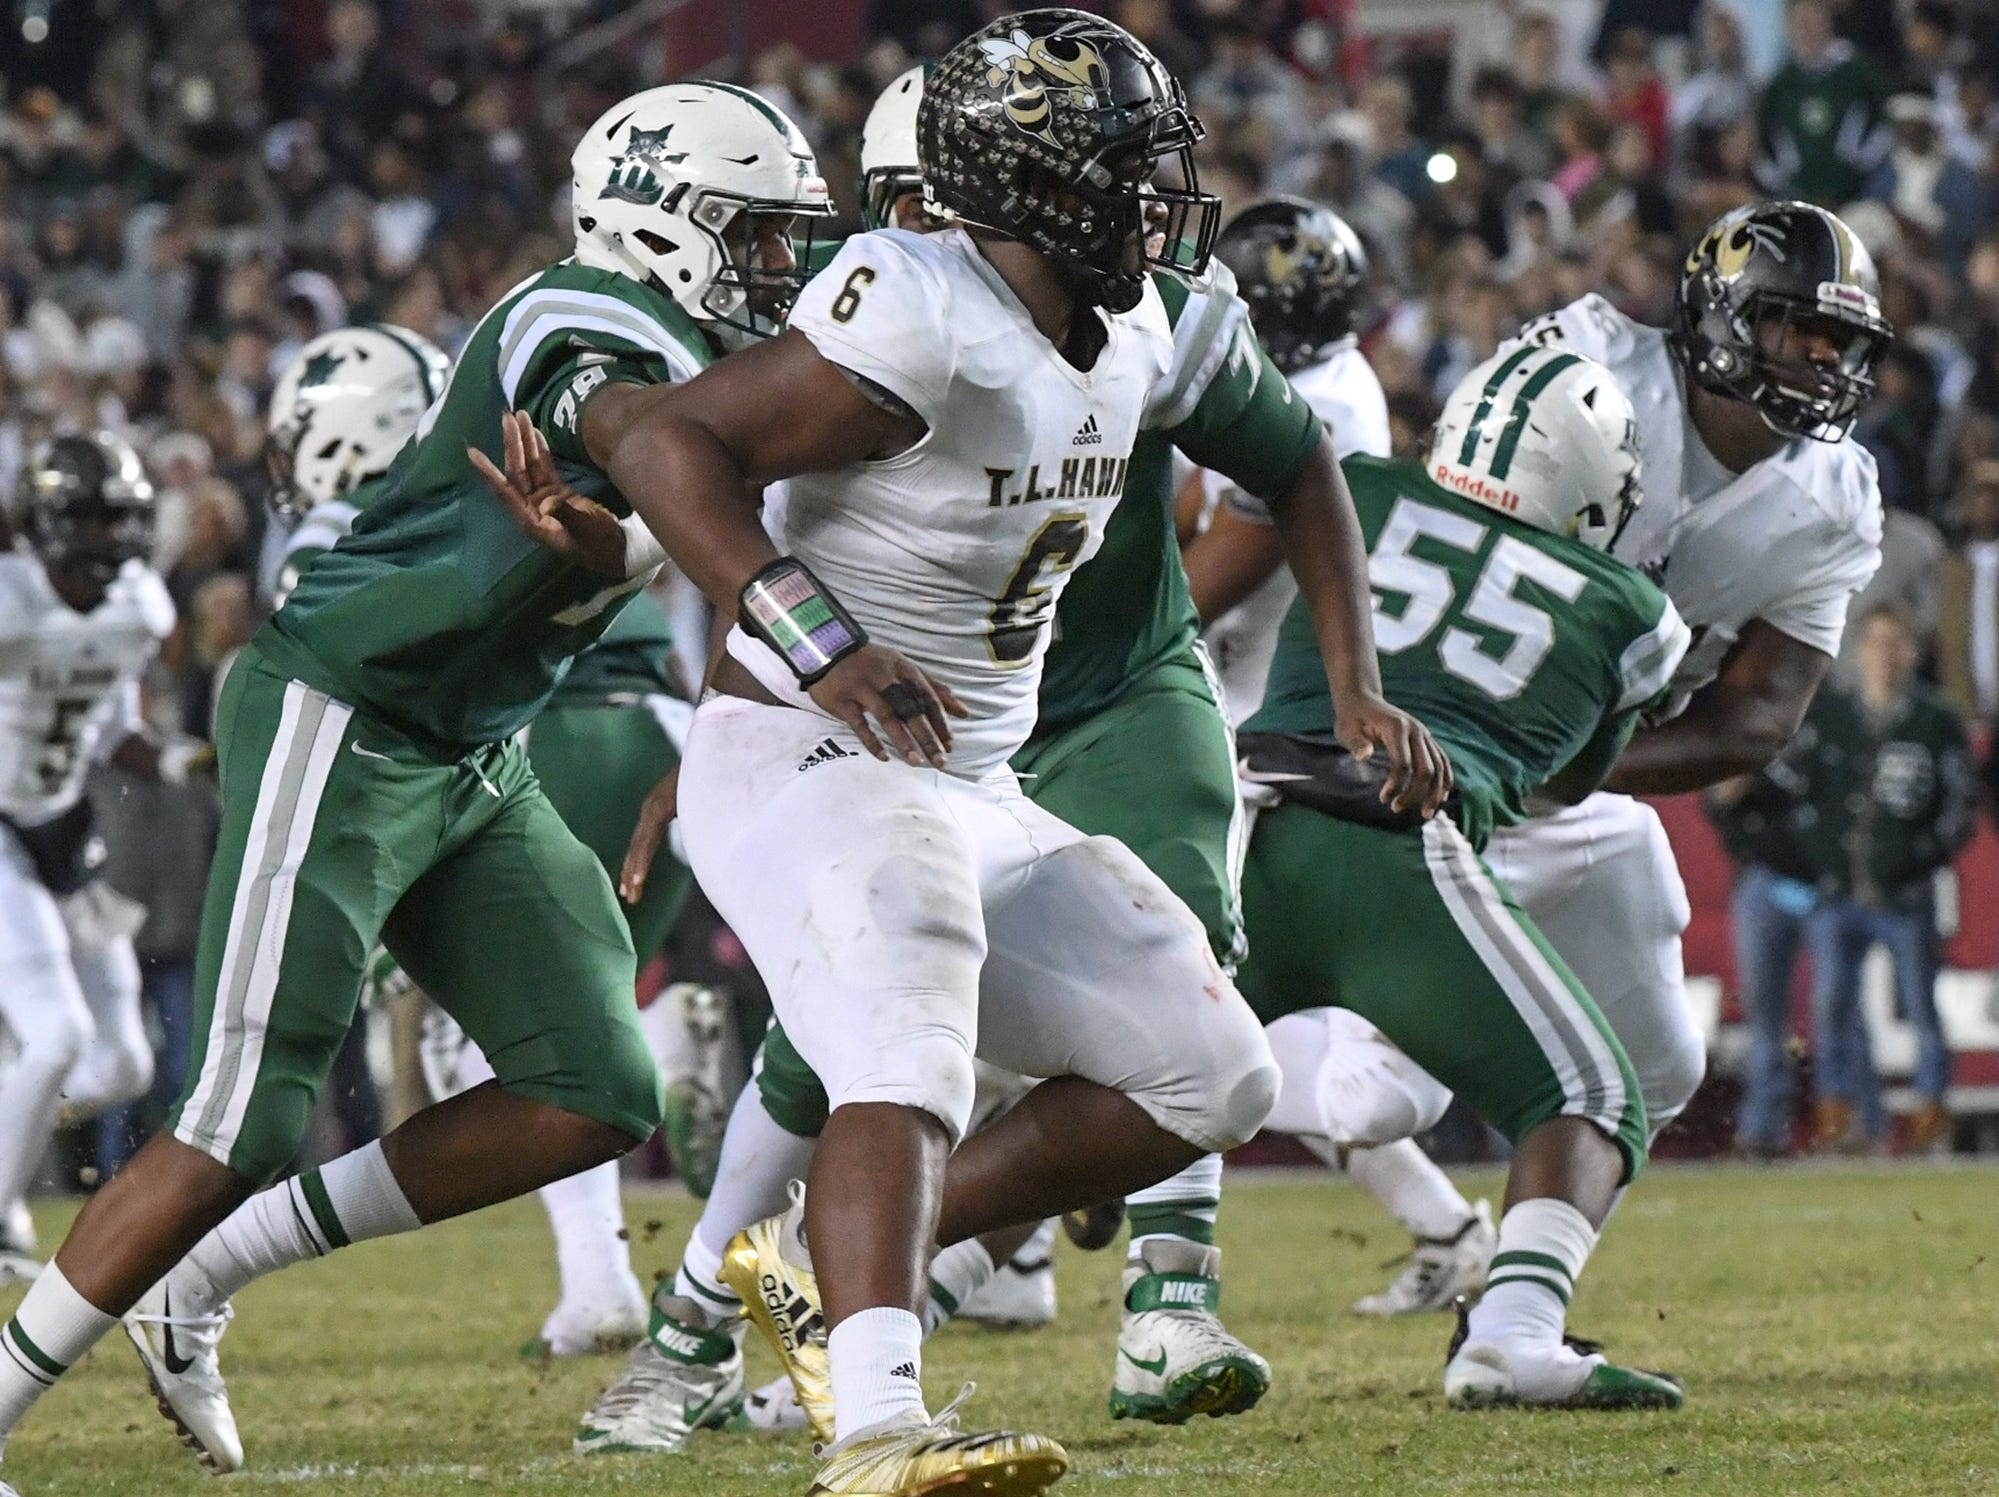 TL Hanna senior Zacch Pickens (6) pressures Dutch Fork junior Tyler Olenchuk(10) during the first quarter of the Class AAAAA state championship game at Williams-Brice Stadium in Columbia Saturday, December 8, 2018.